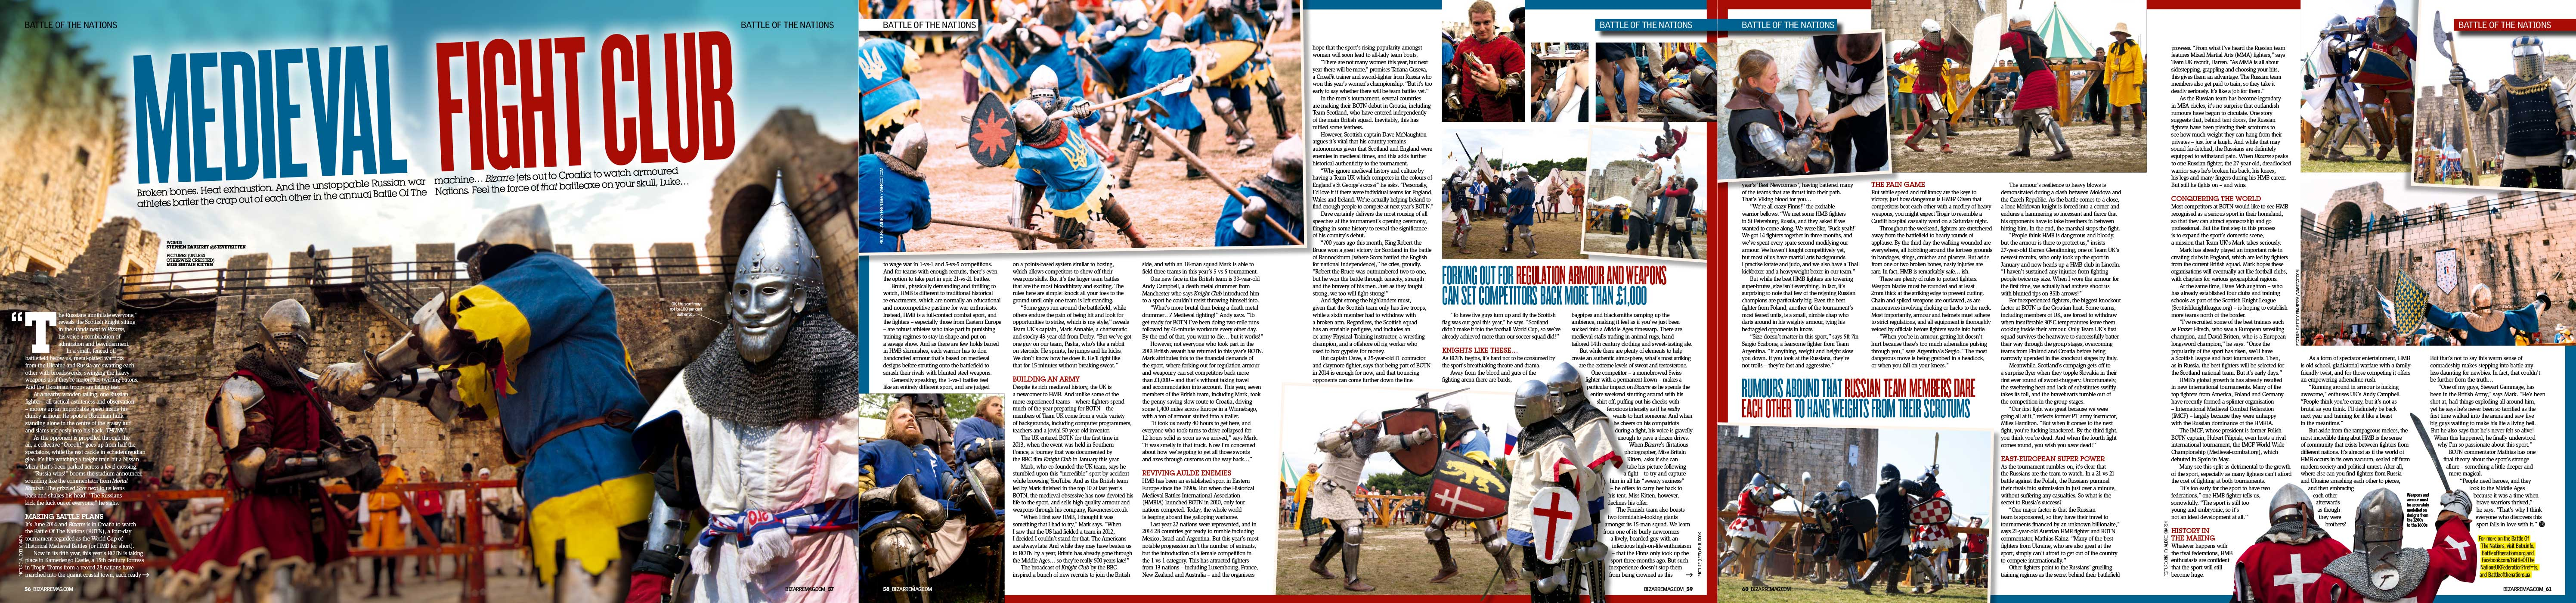 Battle of the Nations: medieval fight club — Bizarre Mag 2014